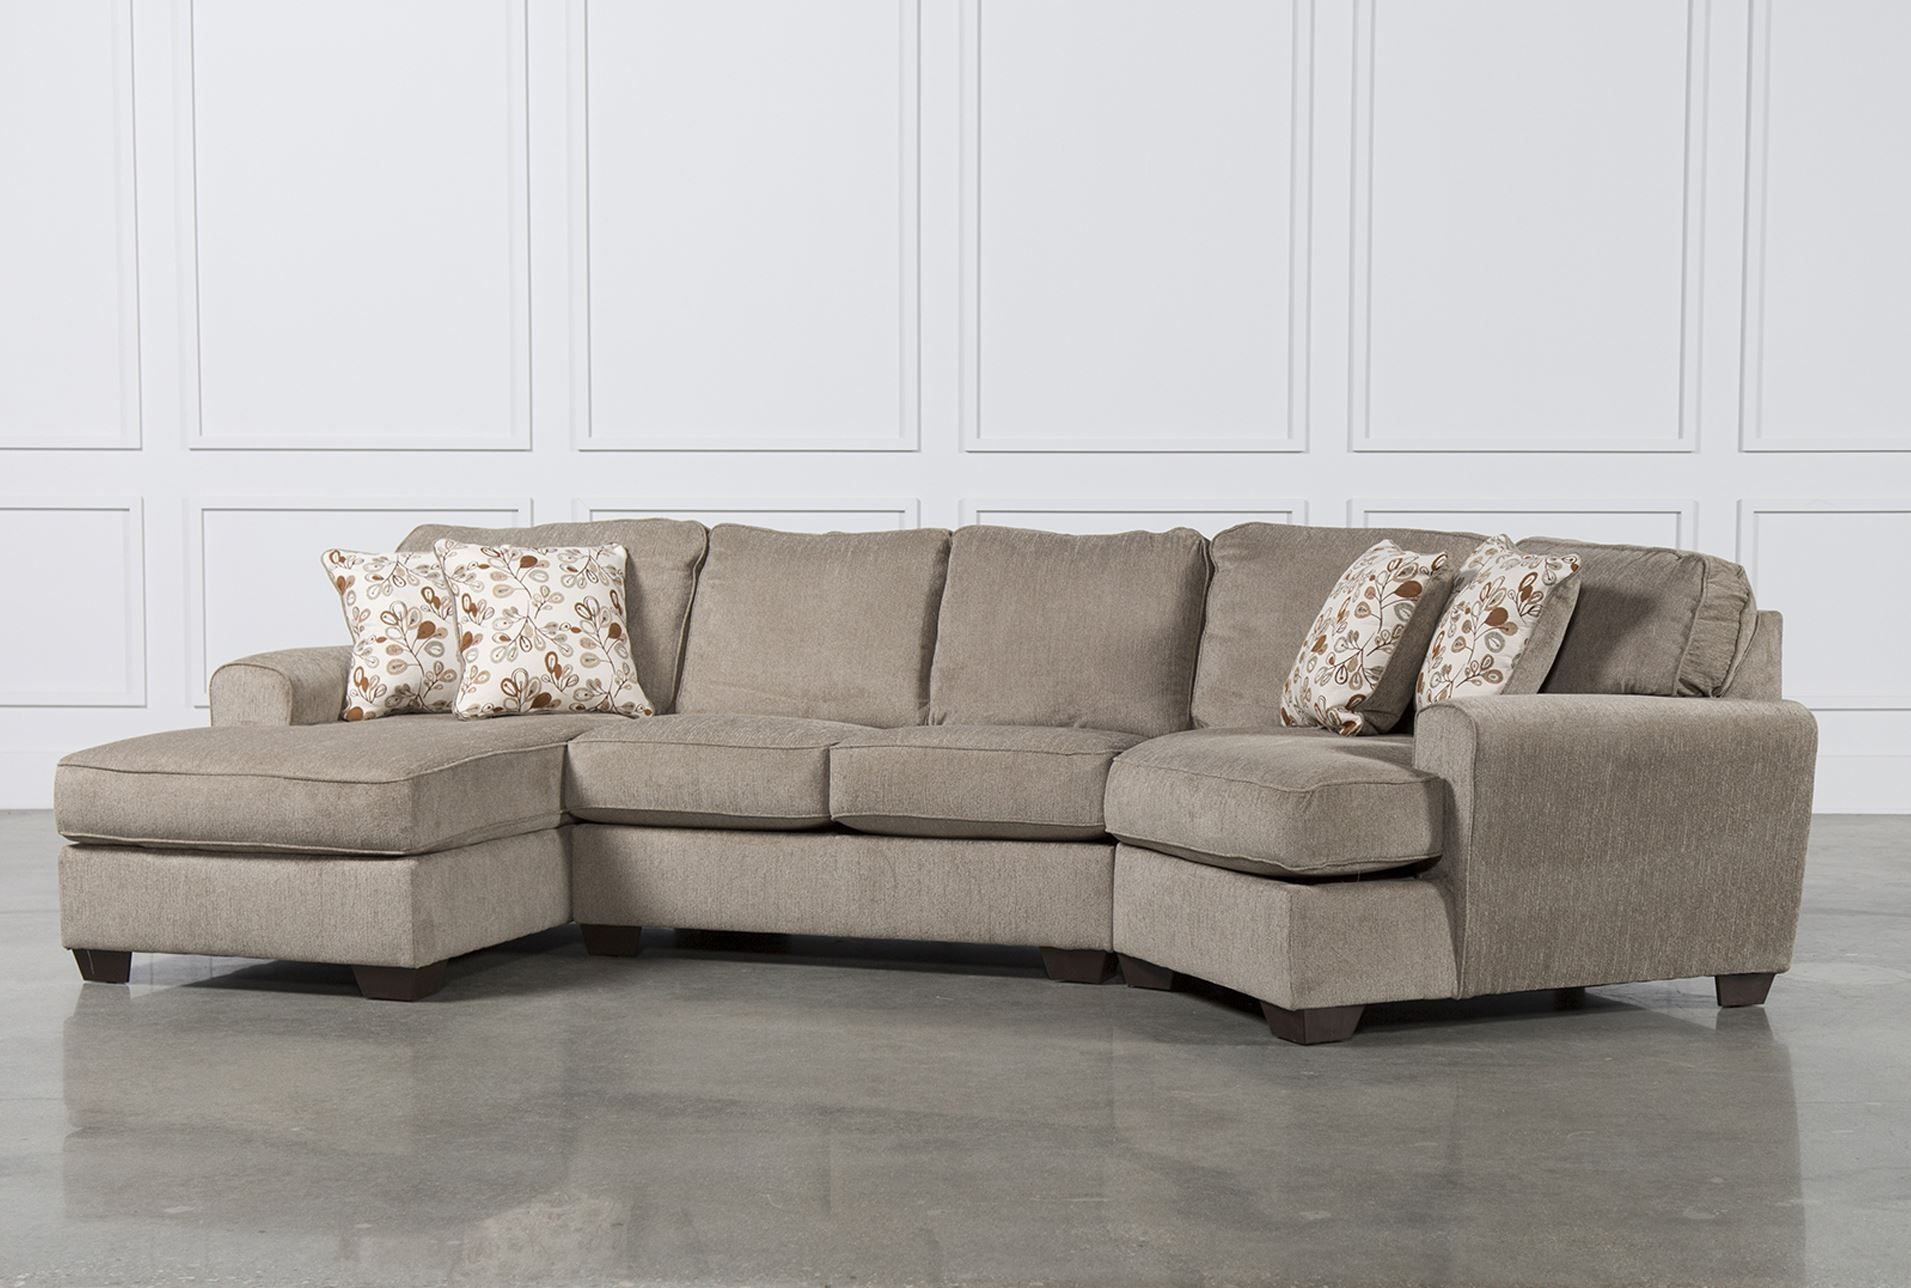 Sectional Sofas With Cuddler Chaise | Sofas | Pinterest | Living With Mcdade Graphite Sofa Chairs (Image 21 of 25)